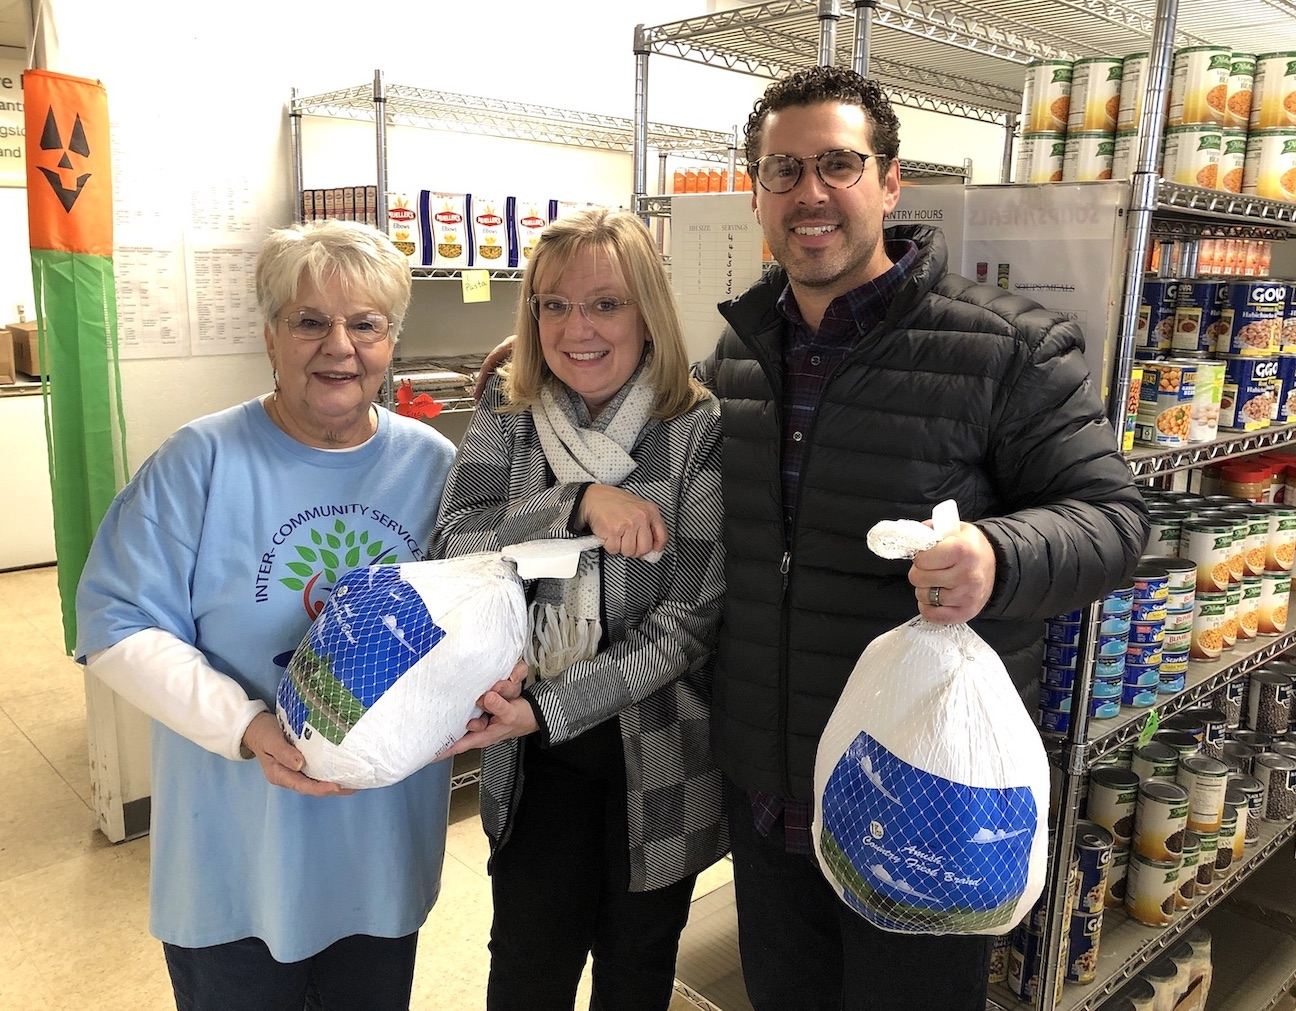 Pictured, from left, at Ransomville Care-n-Share Food Pantry, are Operations Manager Ellie Murphy, board member Lori Adamson, and Michael Hibbard of Gallo Coal Fire Kitchen. Hibbard spearheaded a fundraiser to ensure families in need would receive a Thanksgiving turkey.